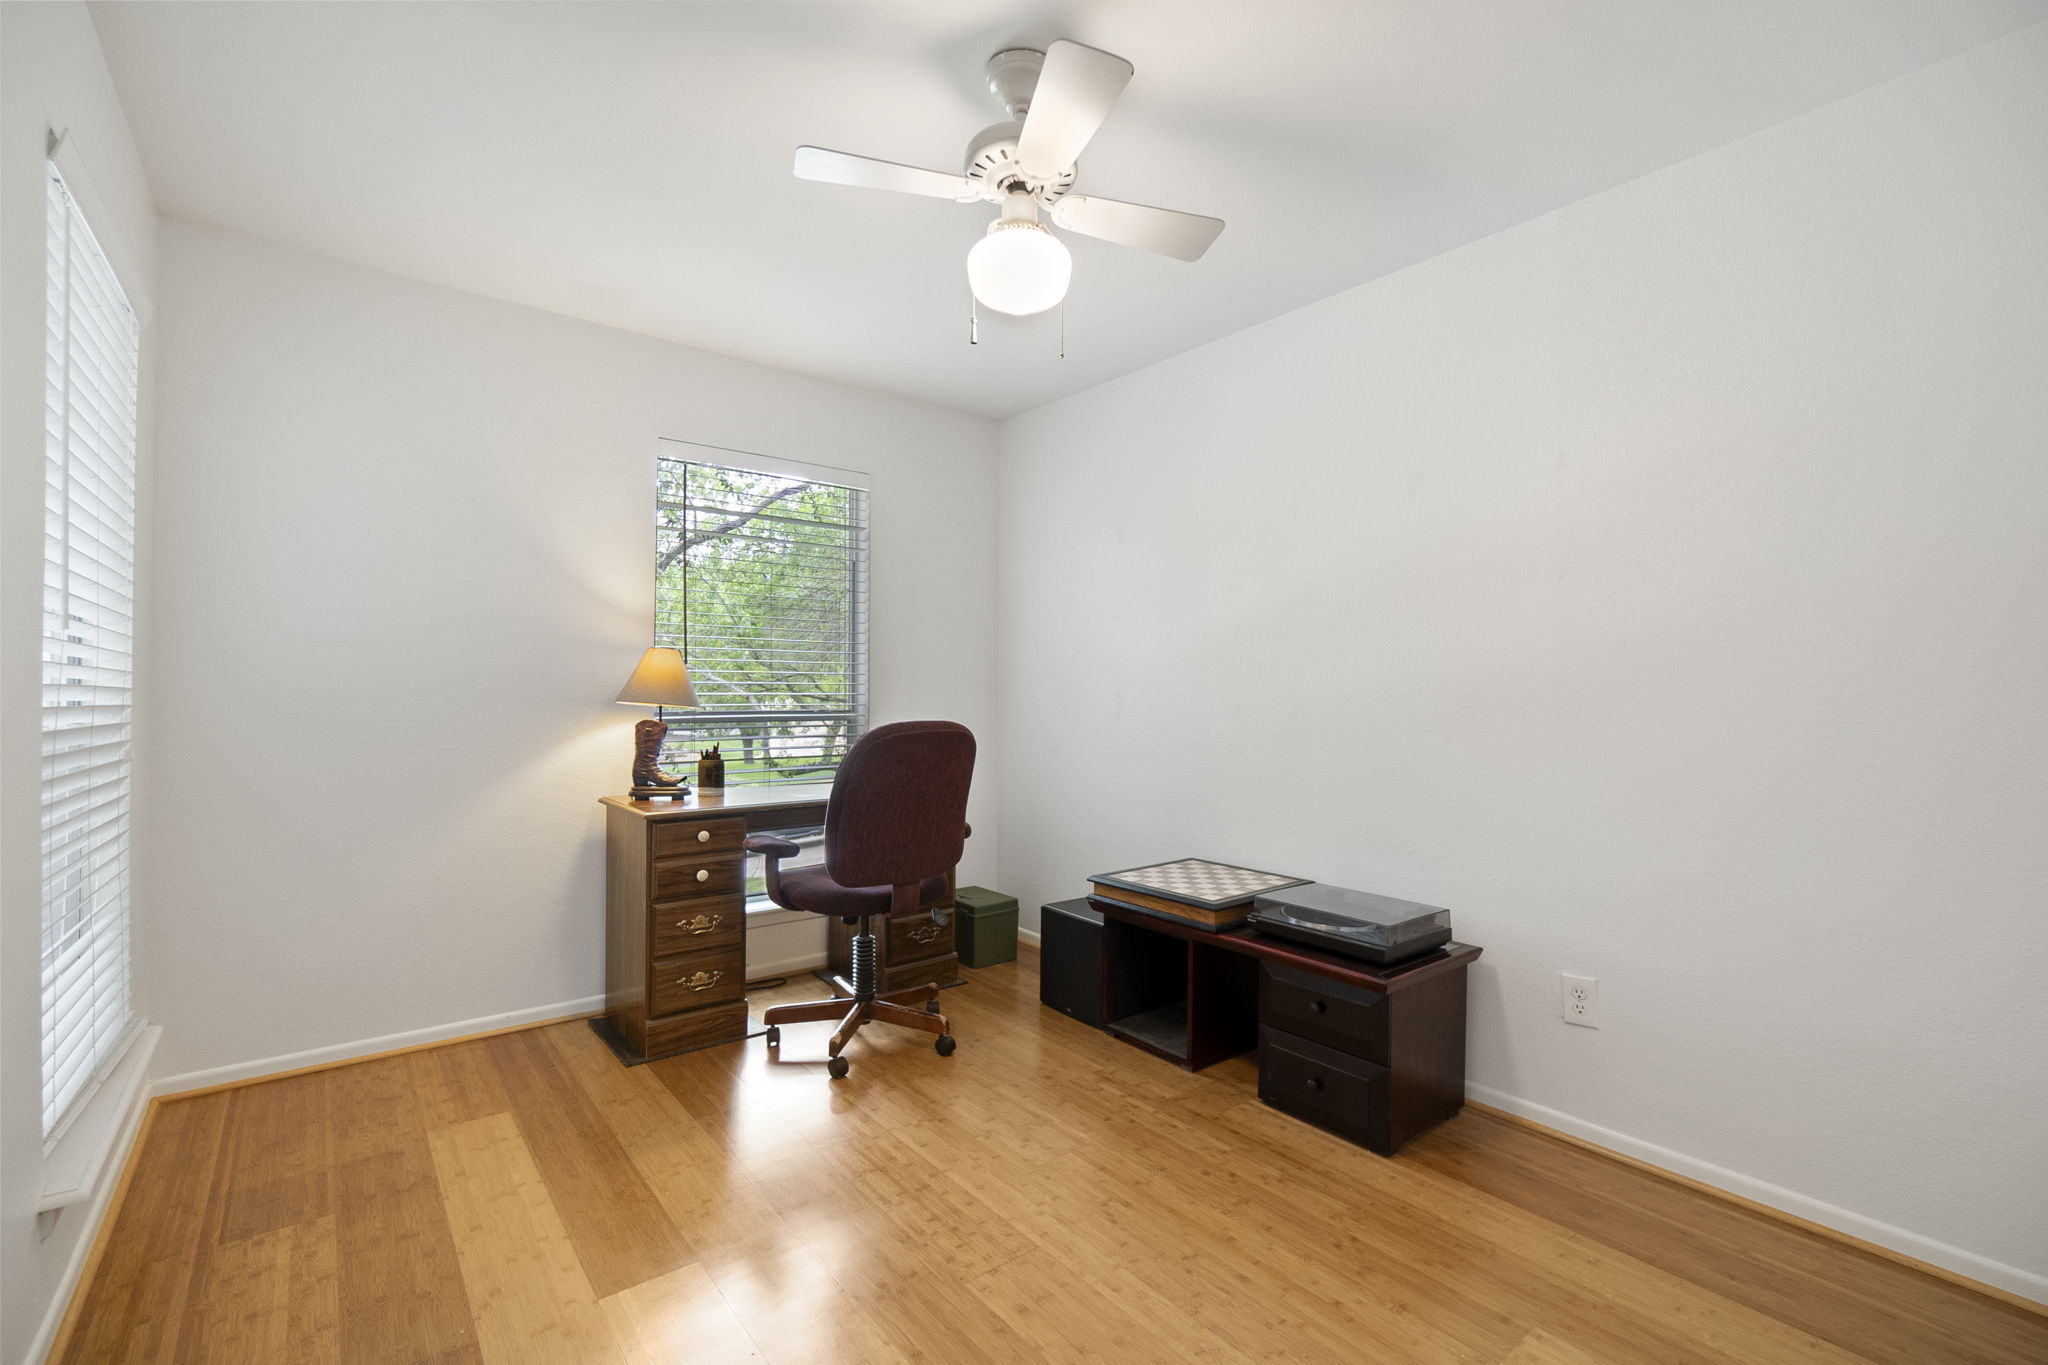 Third bedroom with warm colored flooring